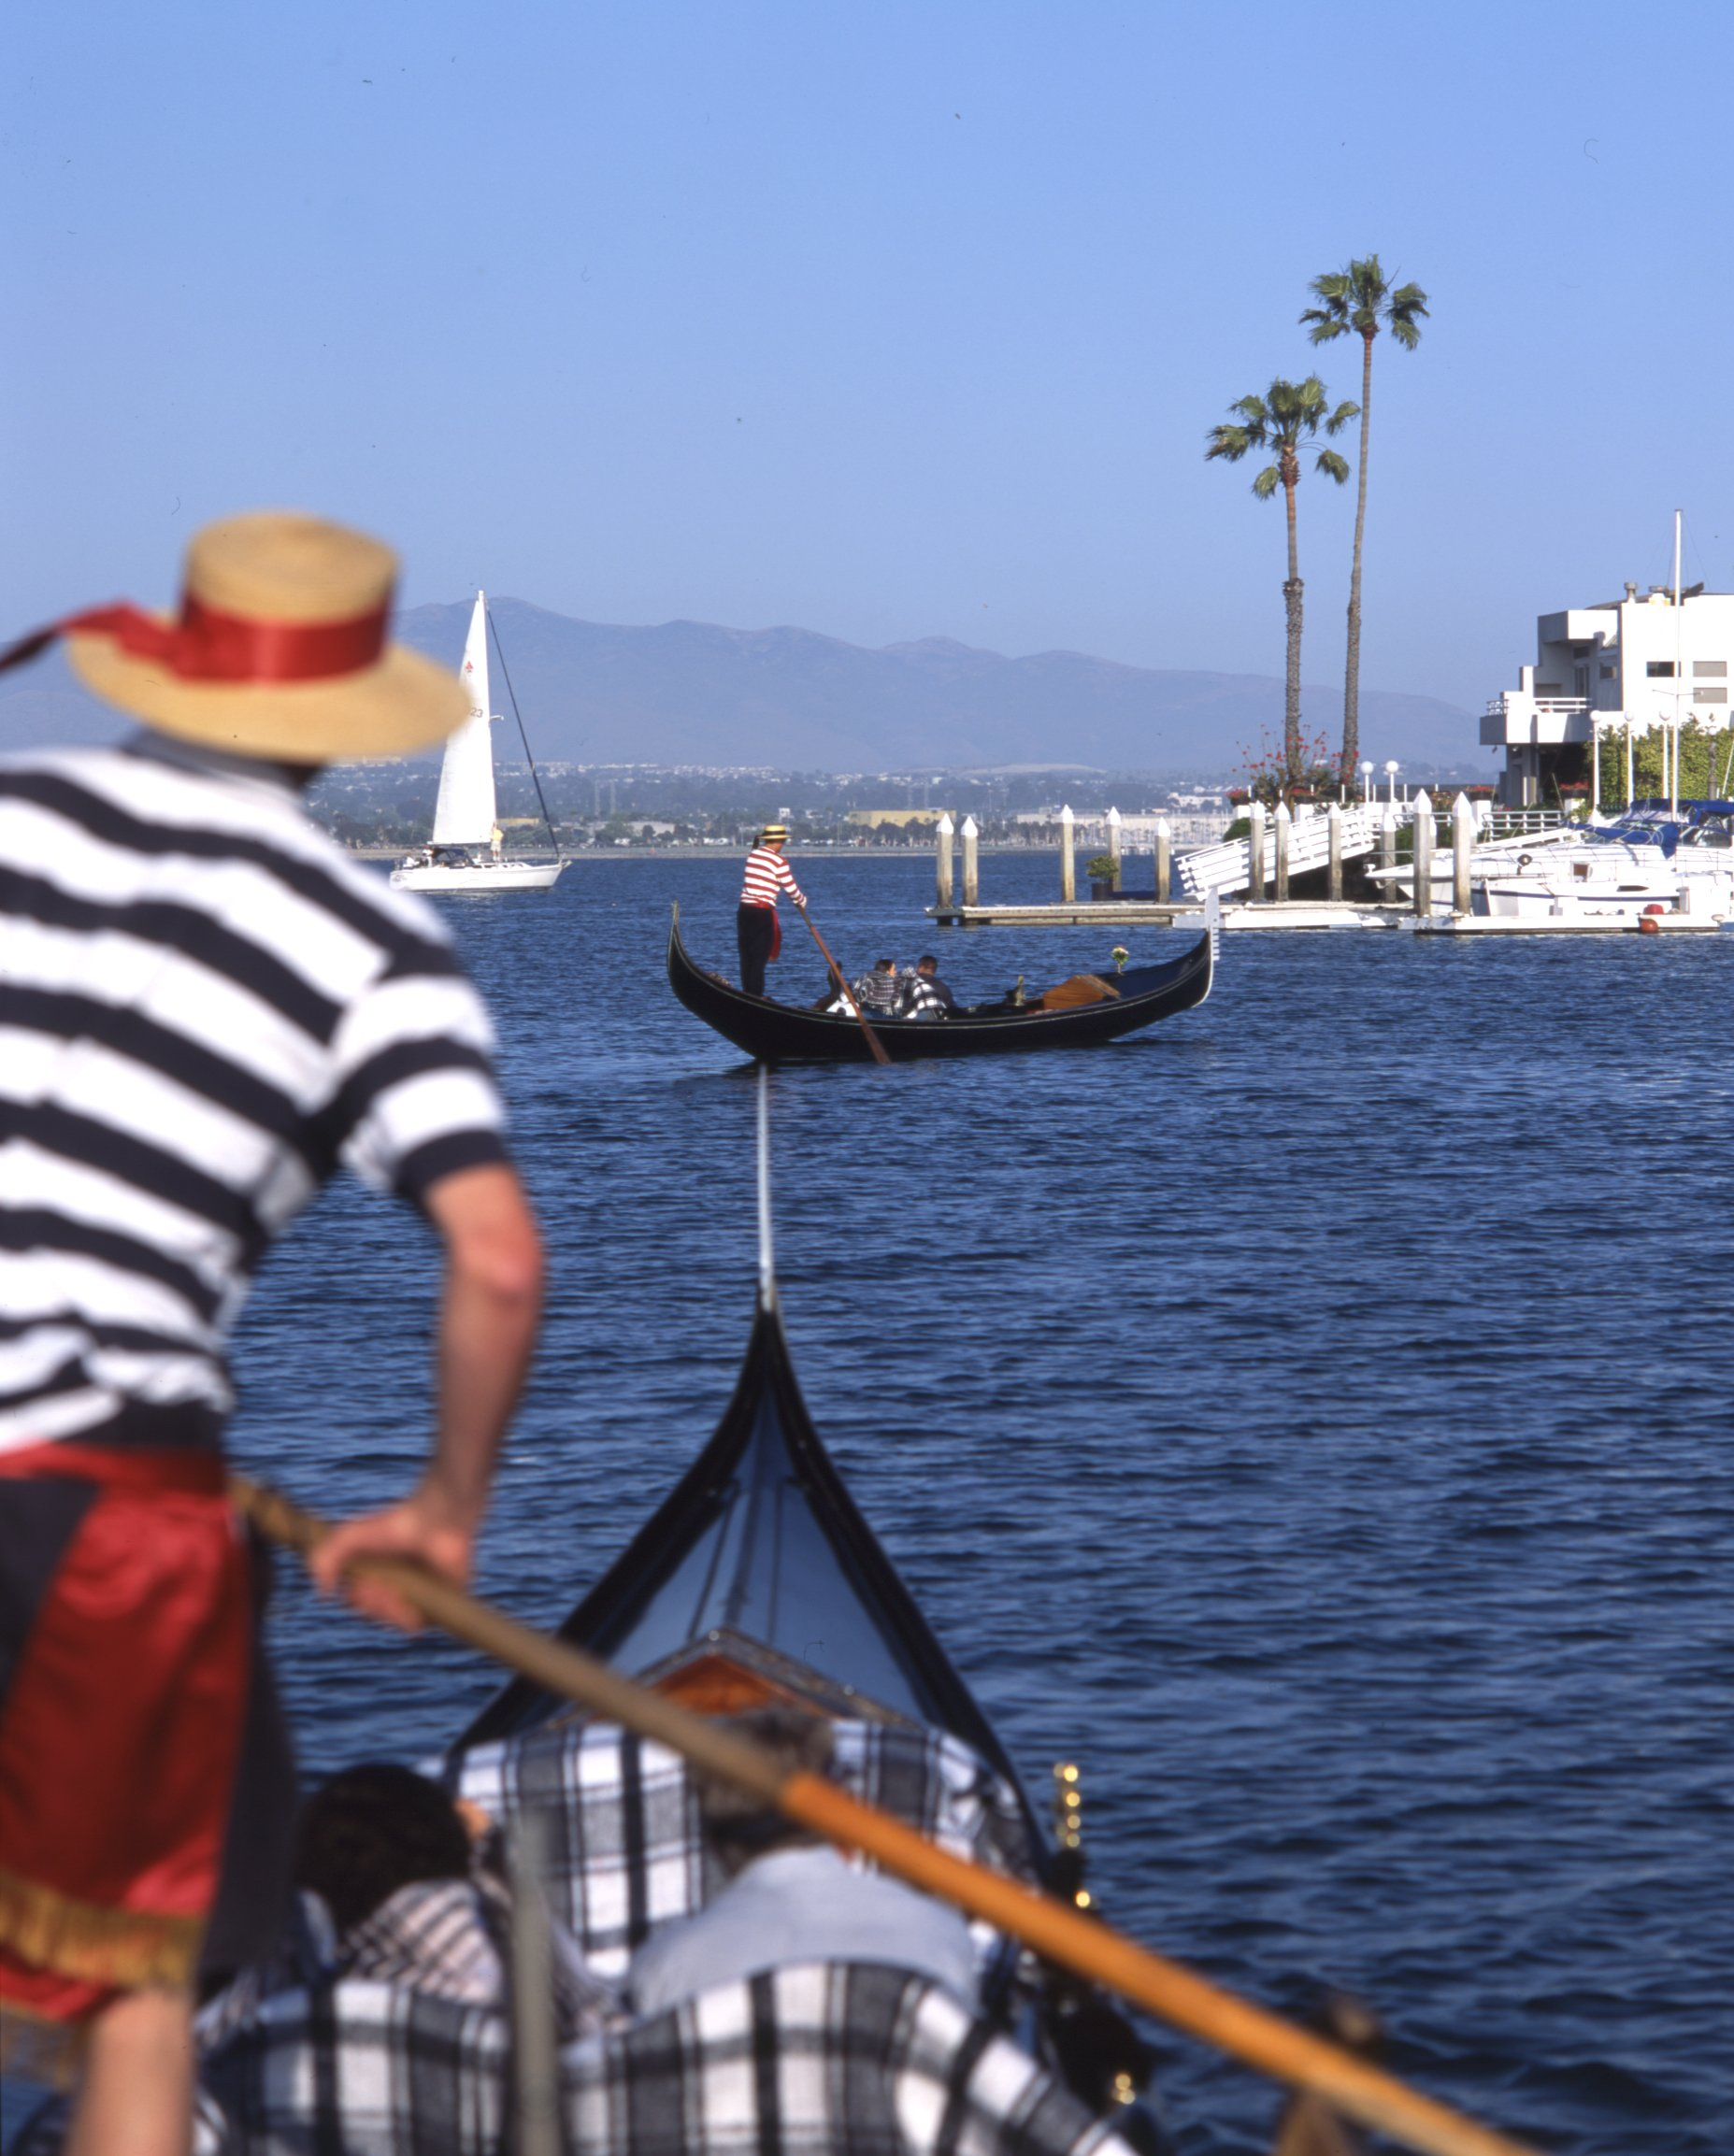 The Gondola Company's romantic cruises through the Coronado Cays